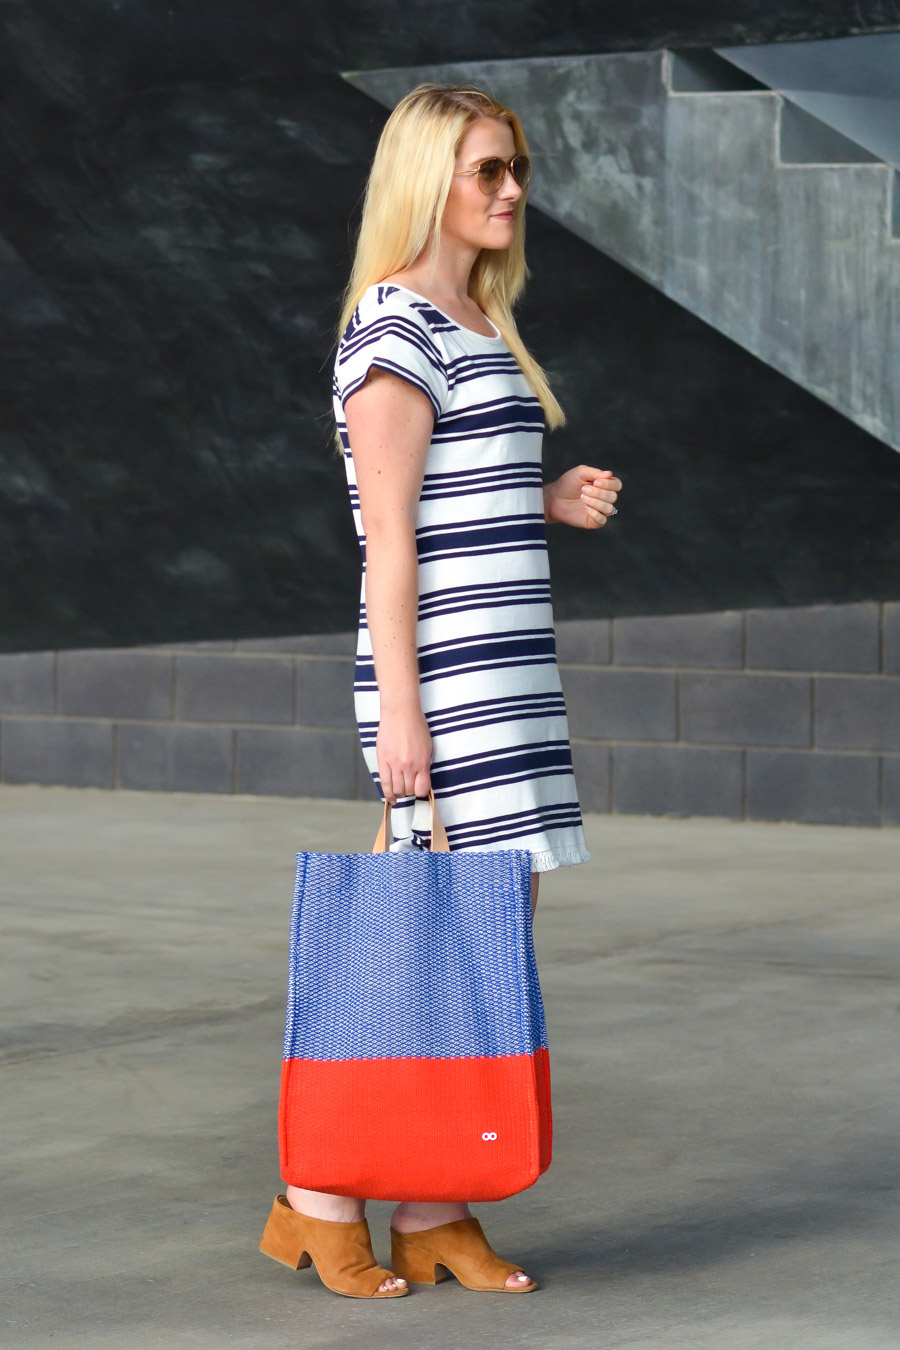 Joie Blue and White Striped Dress Outfit w. Mules + Tote. Summer Outfit.